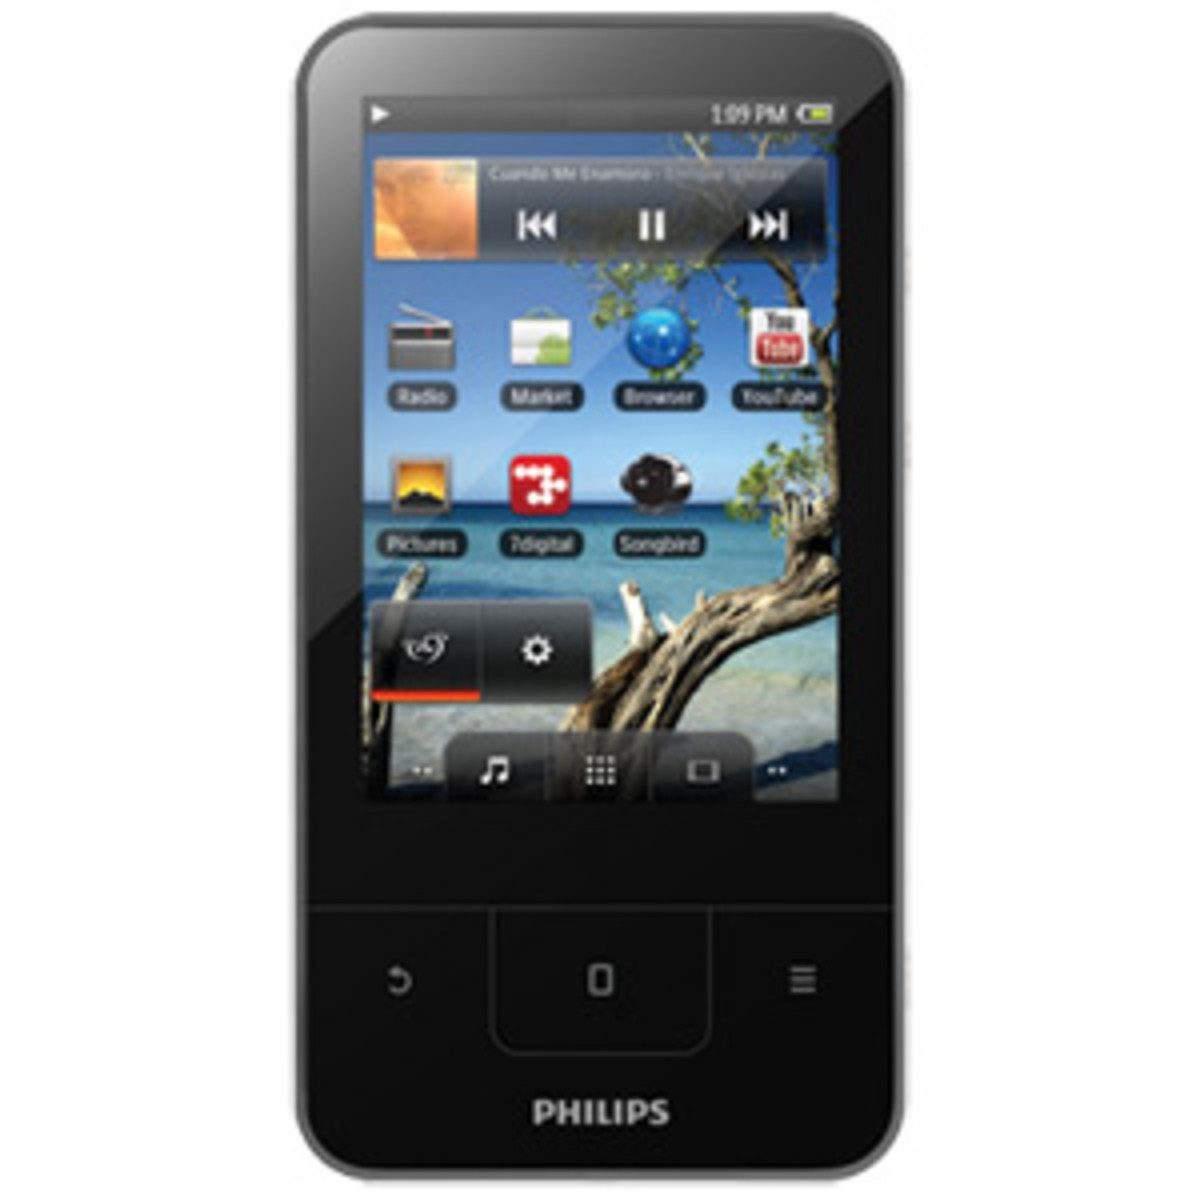 Troubleshooting Philips GoGEAR Problems